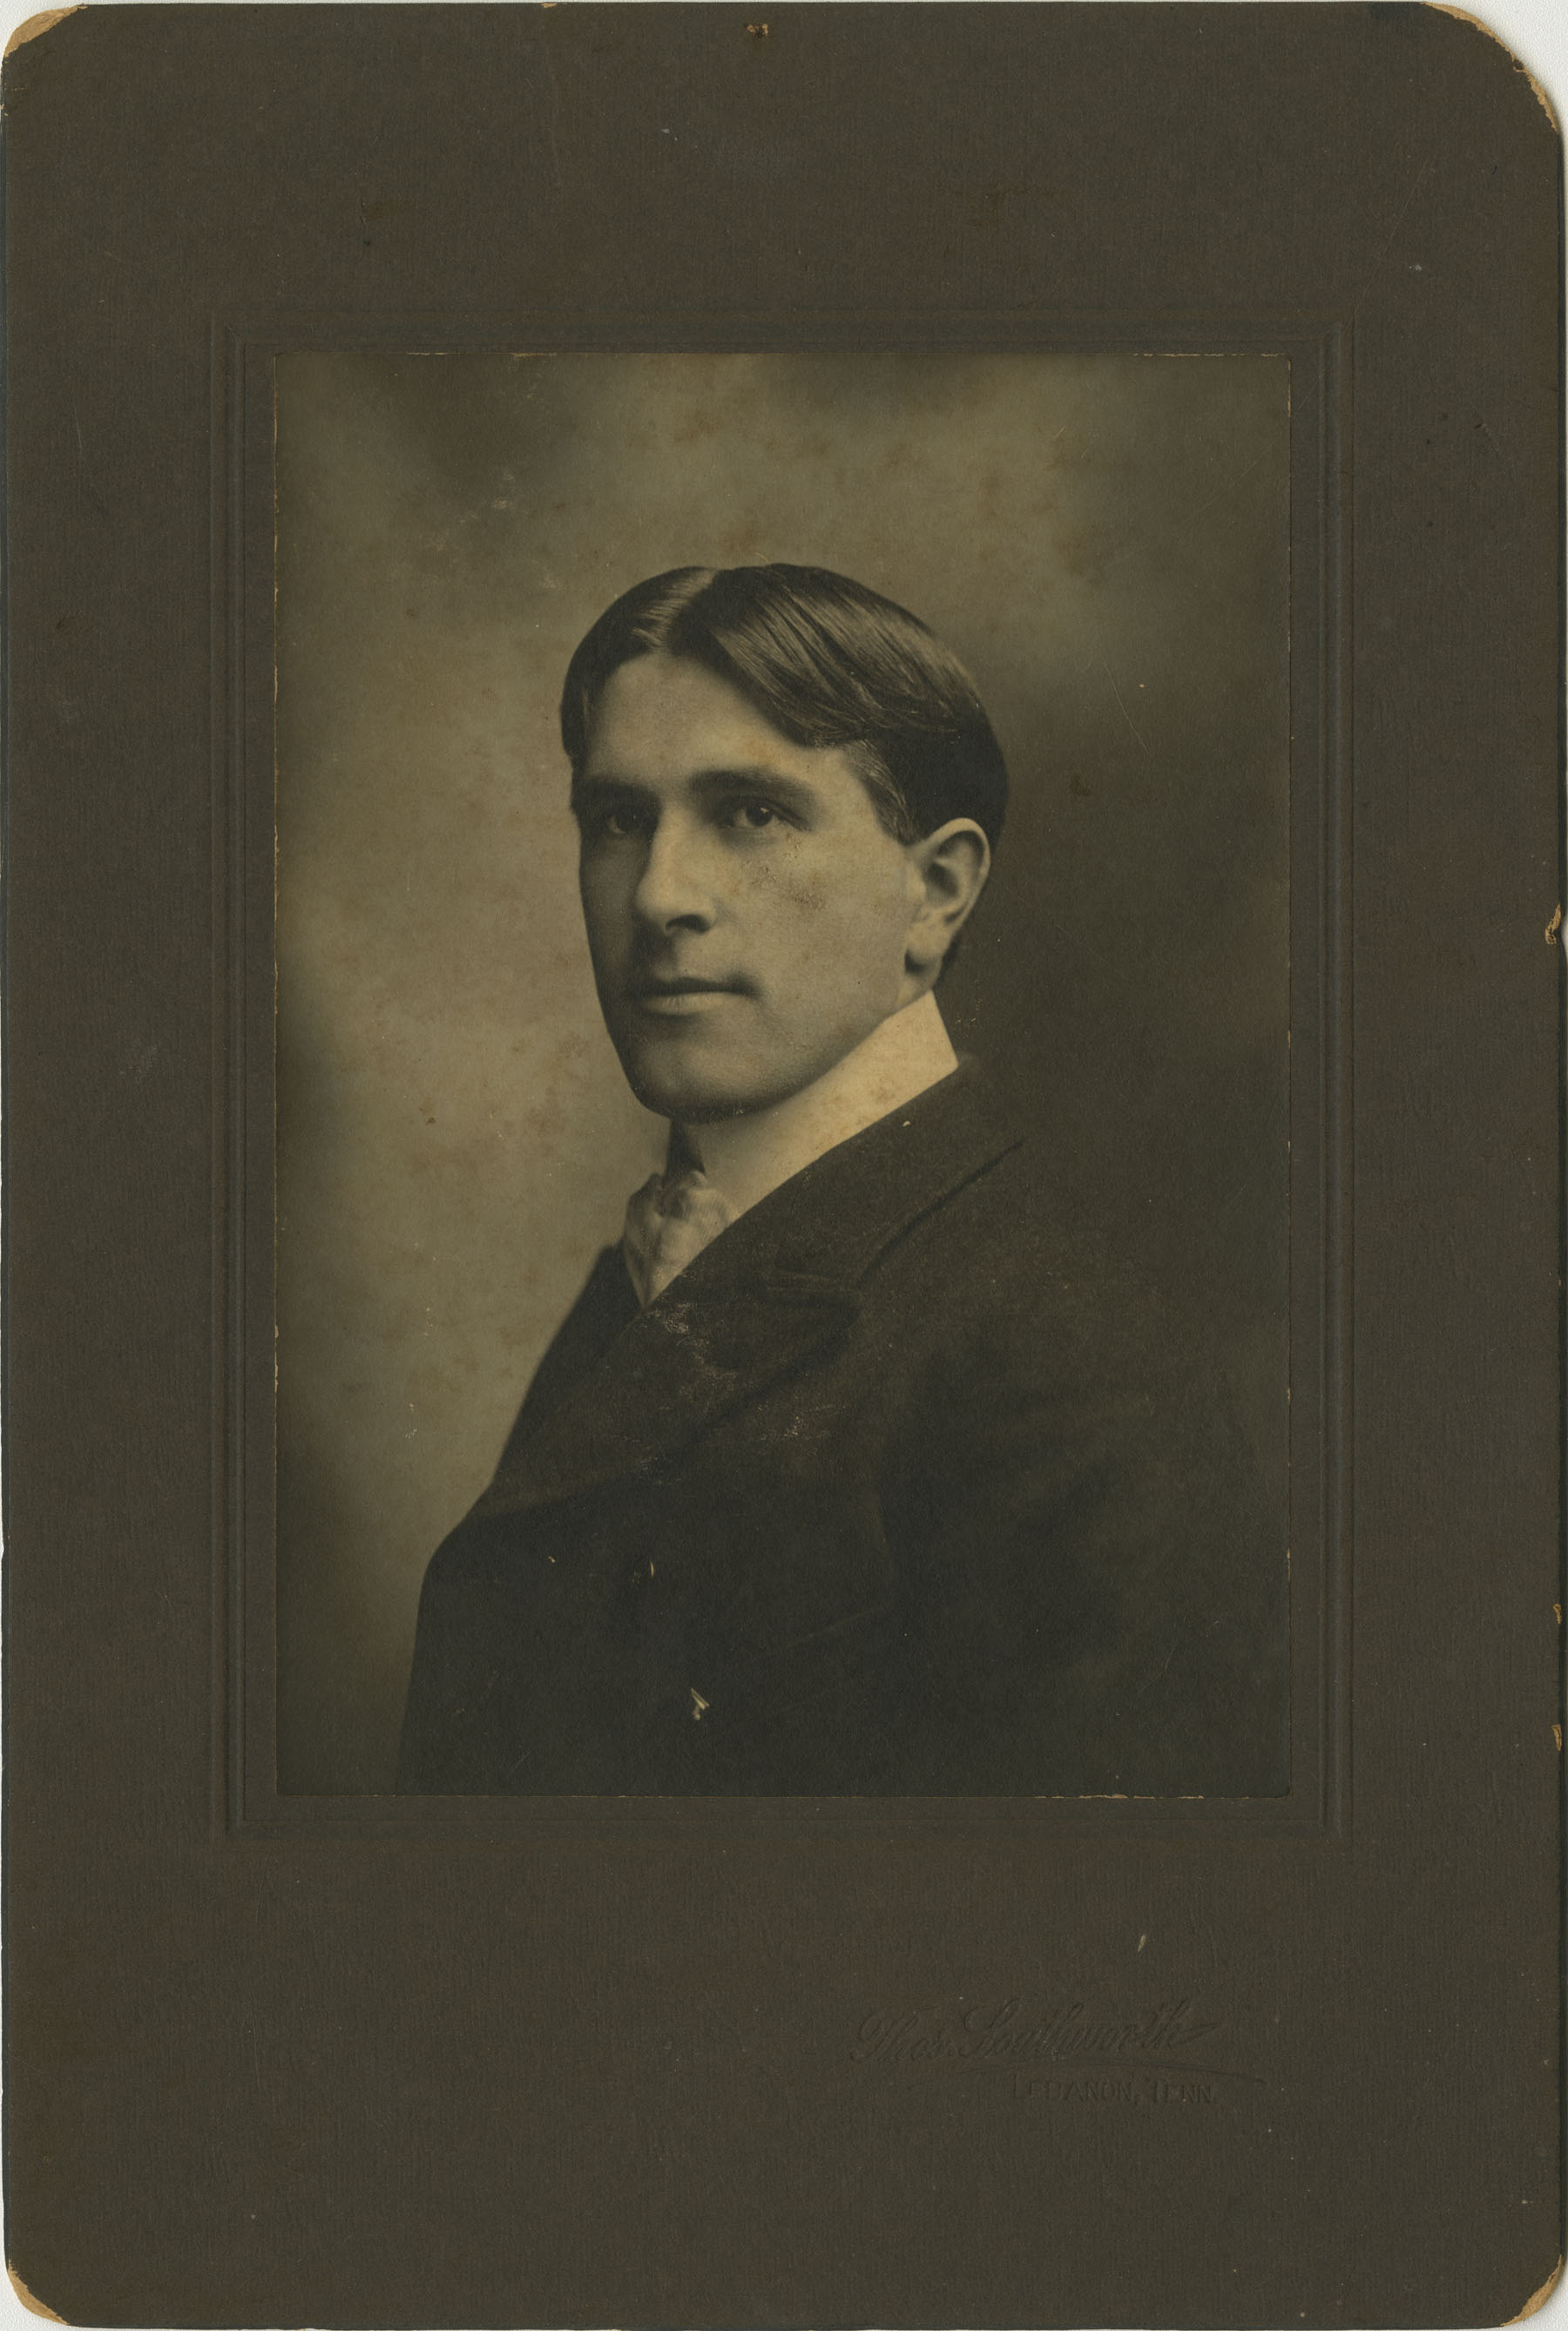 A Portrait of Unidentified Man 1